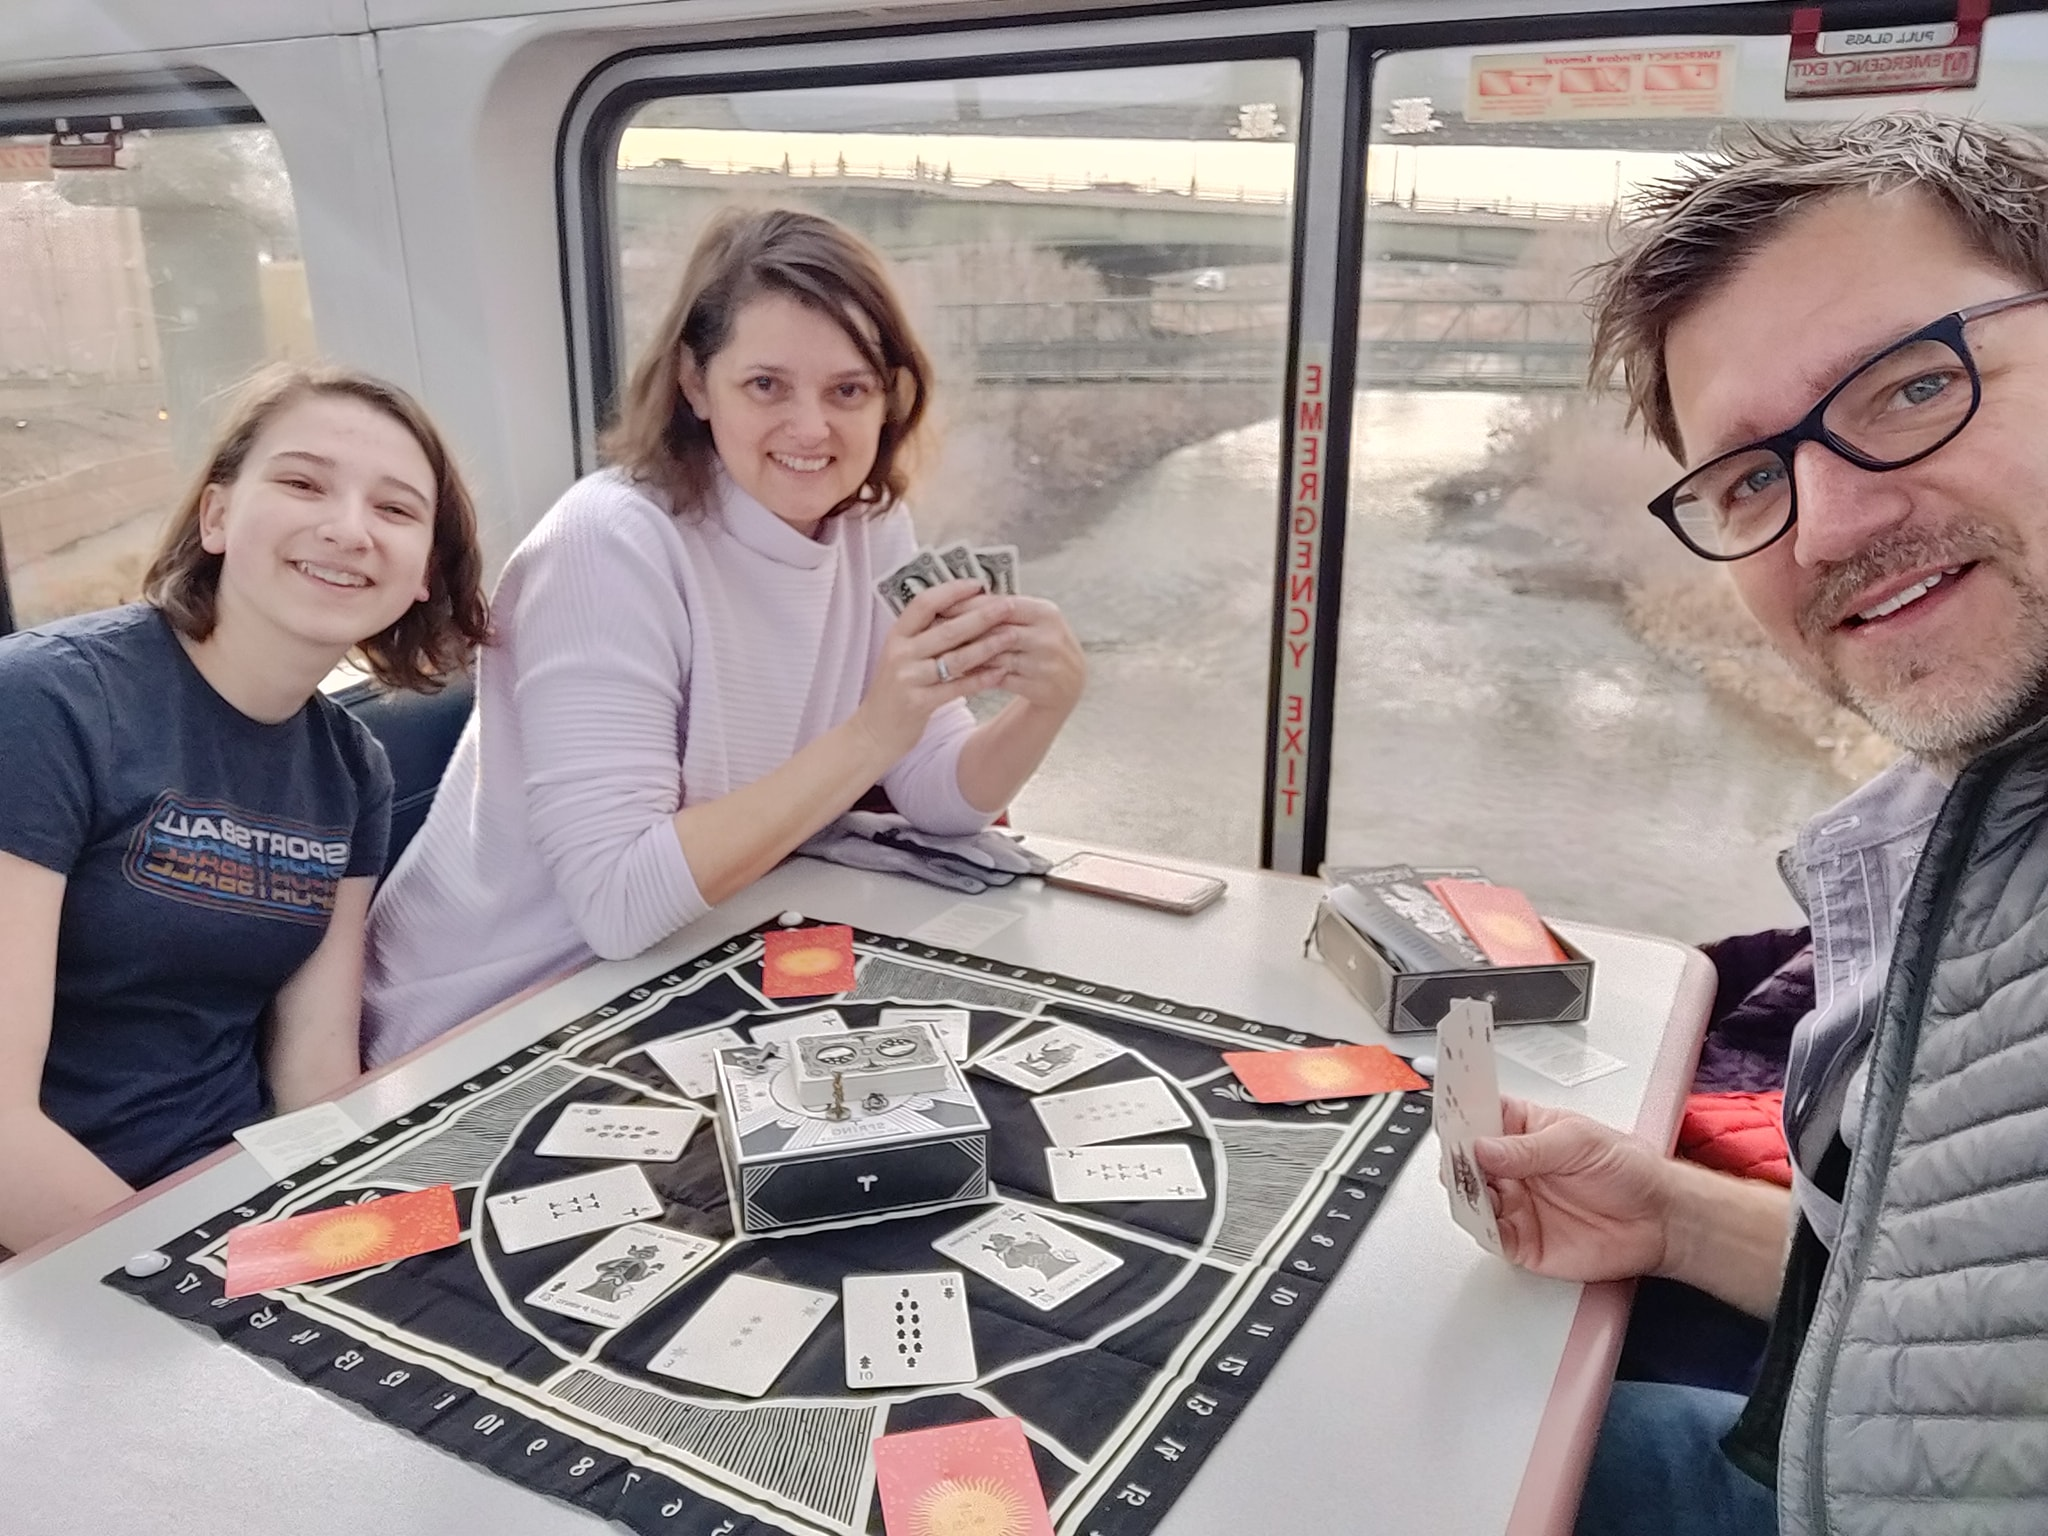 Illimat Players Facebook group member Donald Koenig with his family.